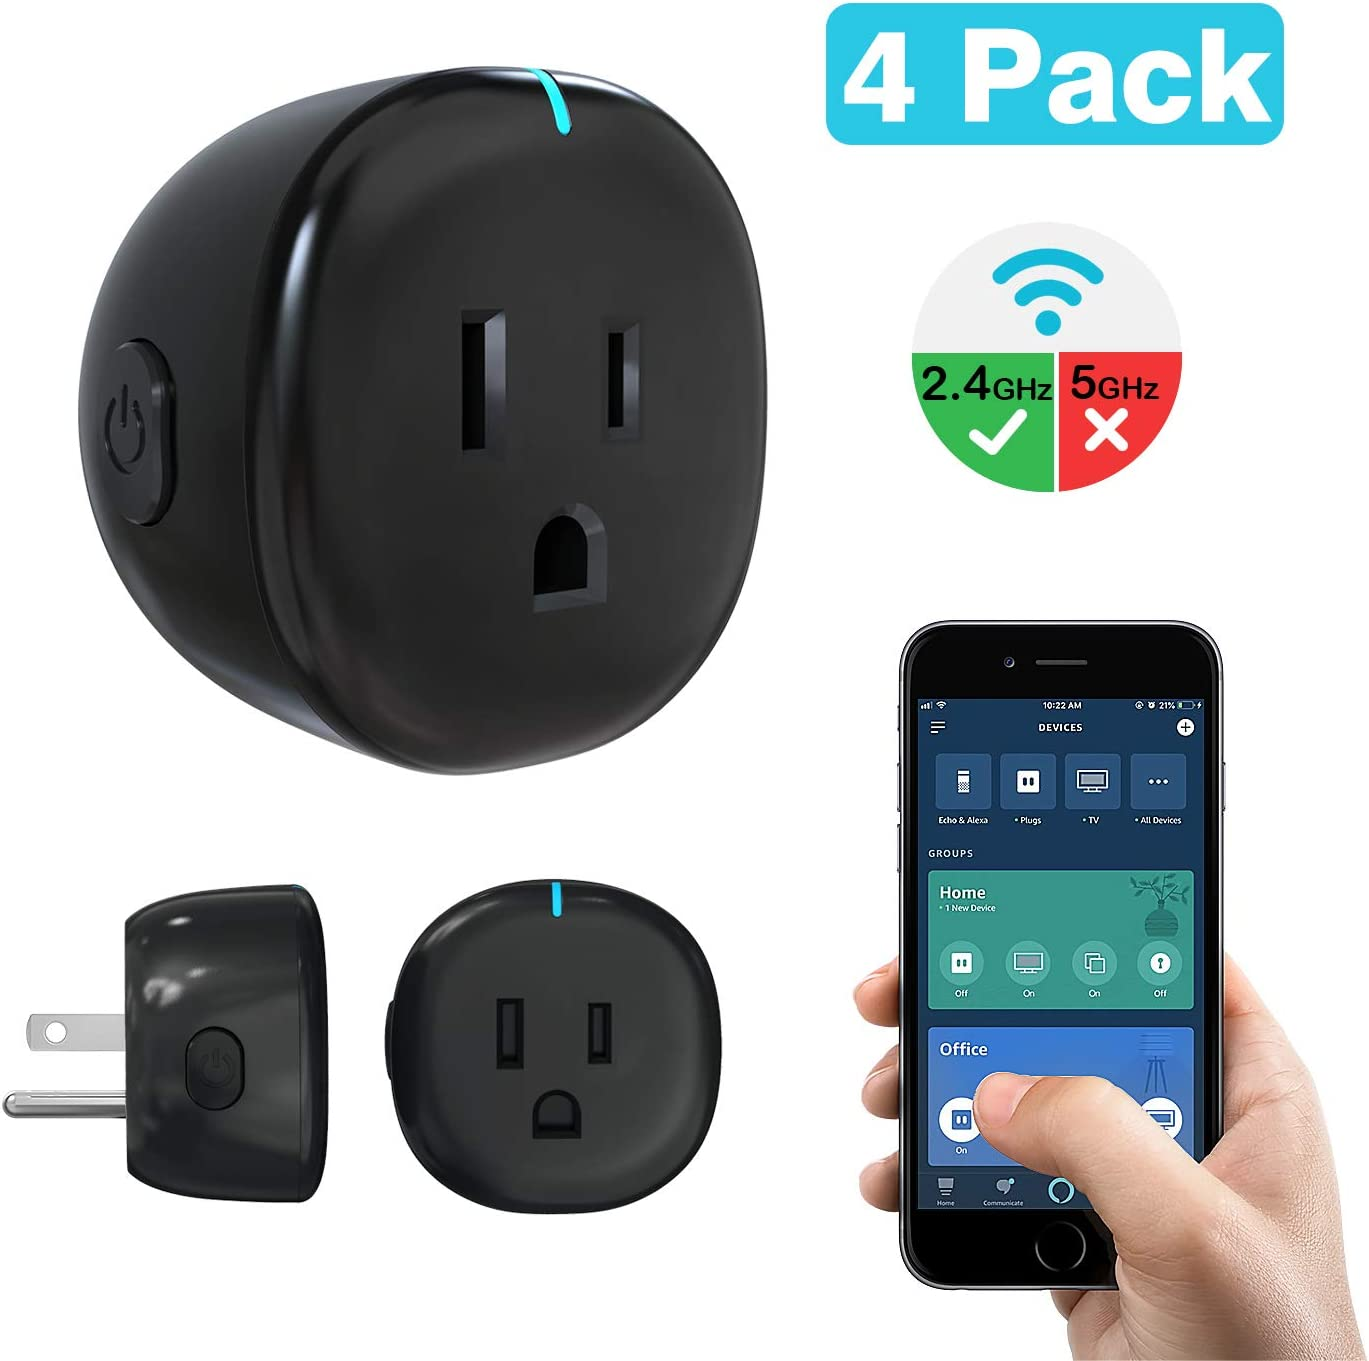 MoKo Wifi Smart Plug, [4 Pack] Mini Wifi Outlet Mini Socket Work with Alexa Echo, Google Home, APP Remote Control Timer Plug, 10A Only Supports 2.4GHz Network No Hub Required, Black